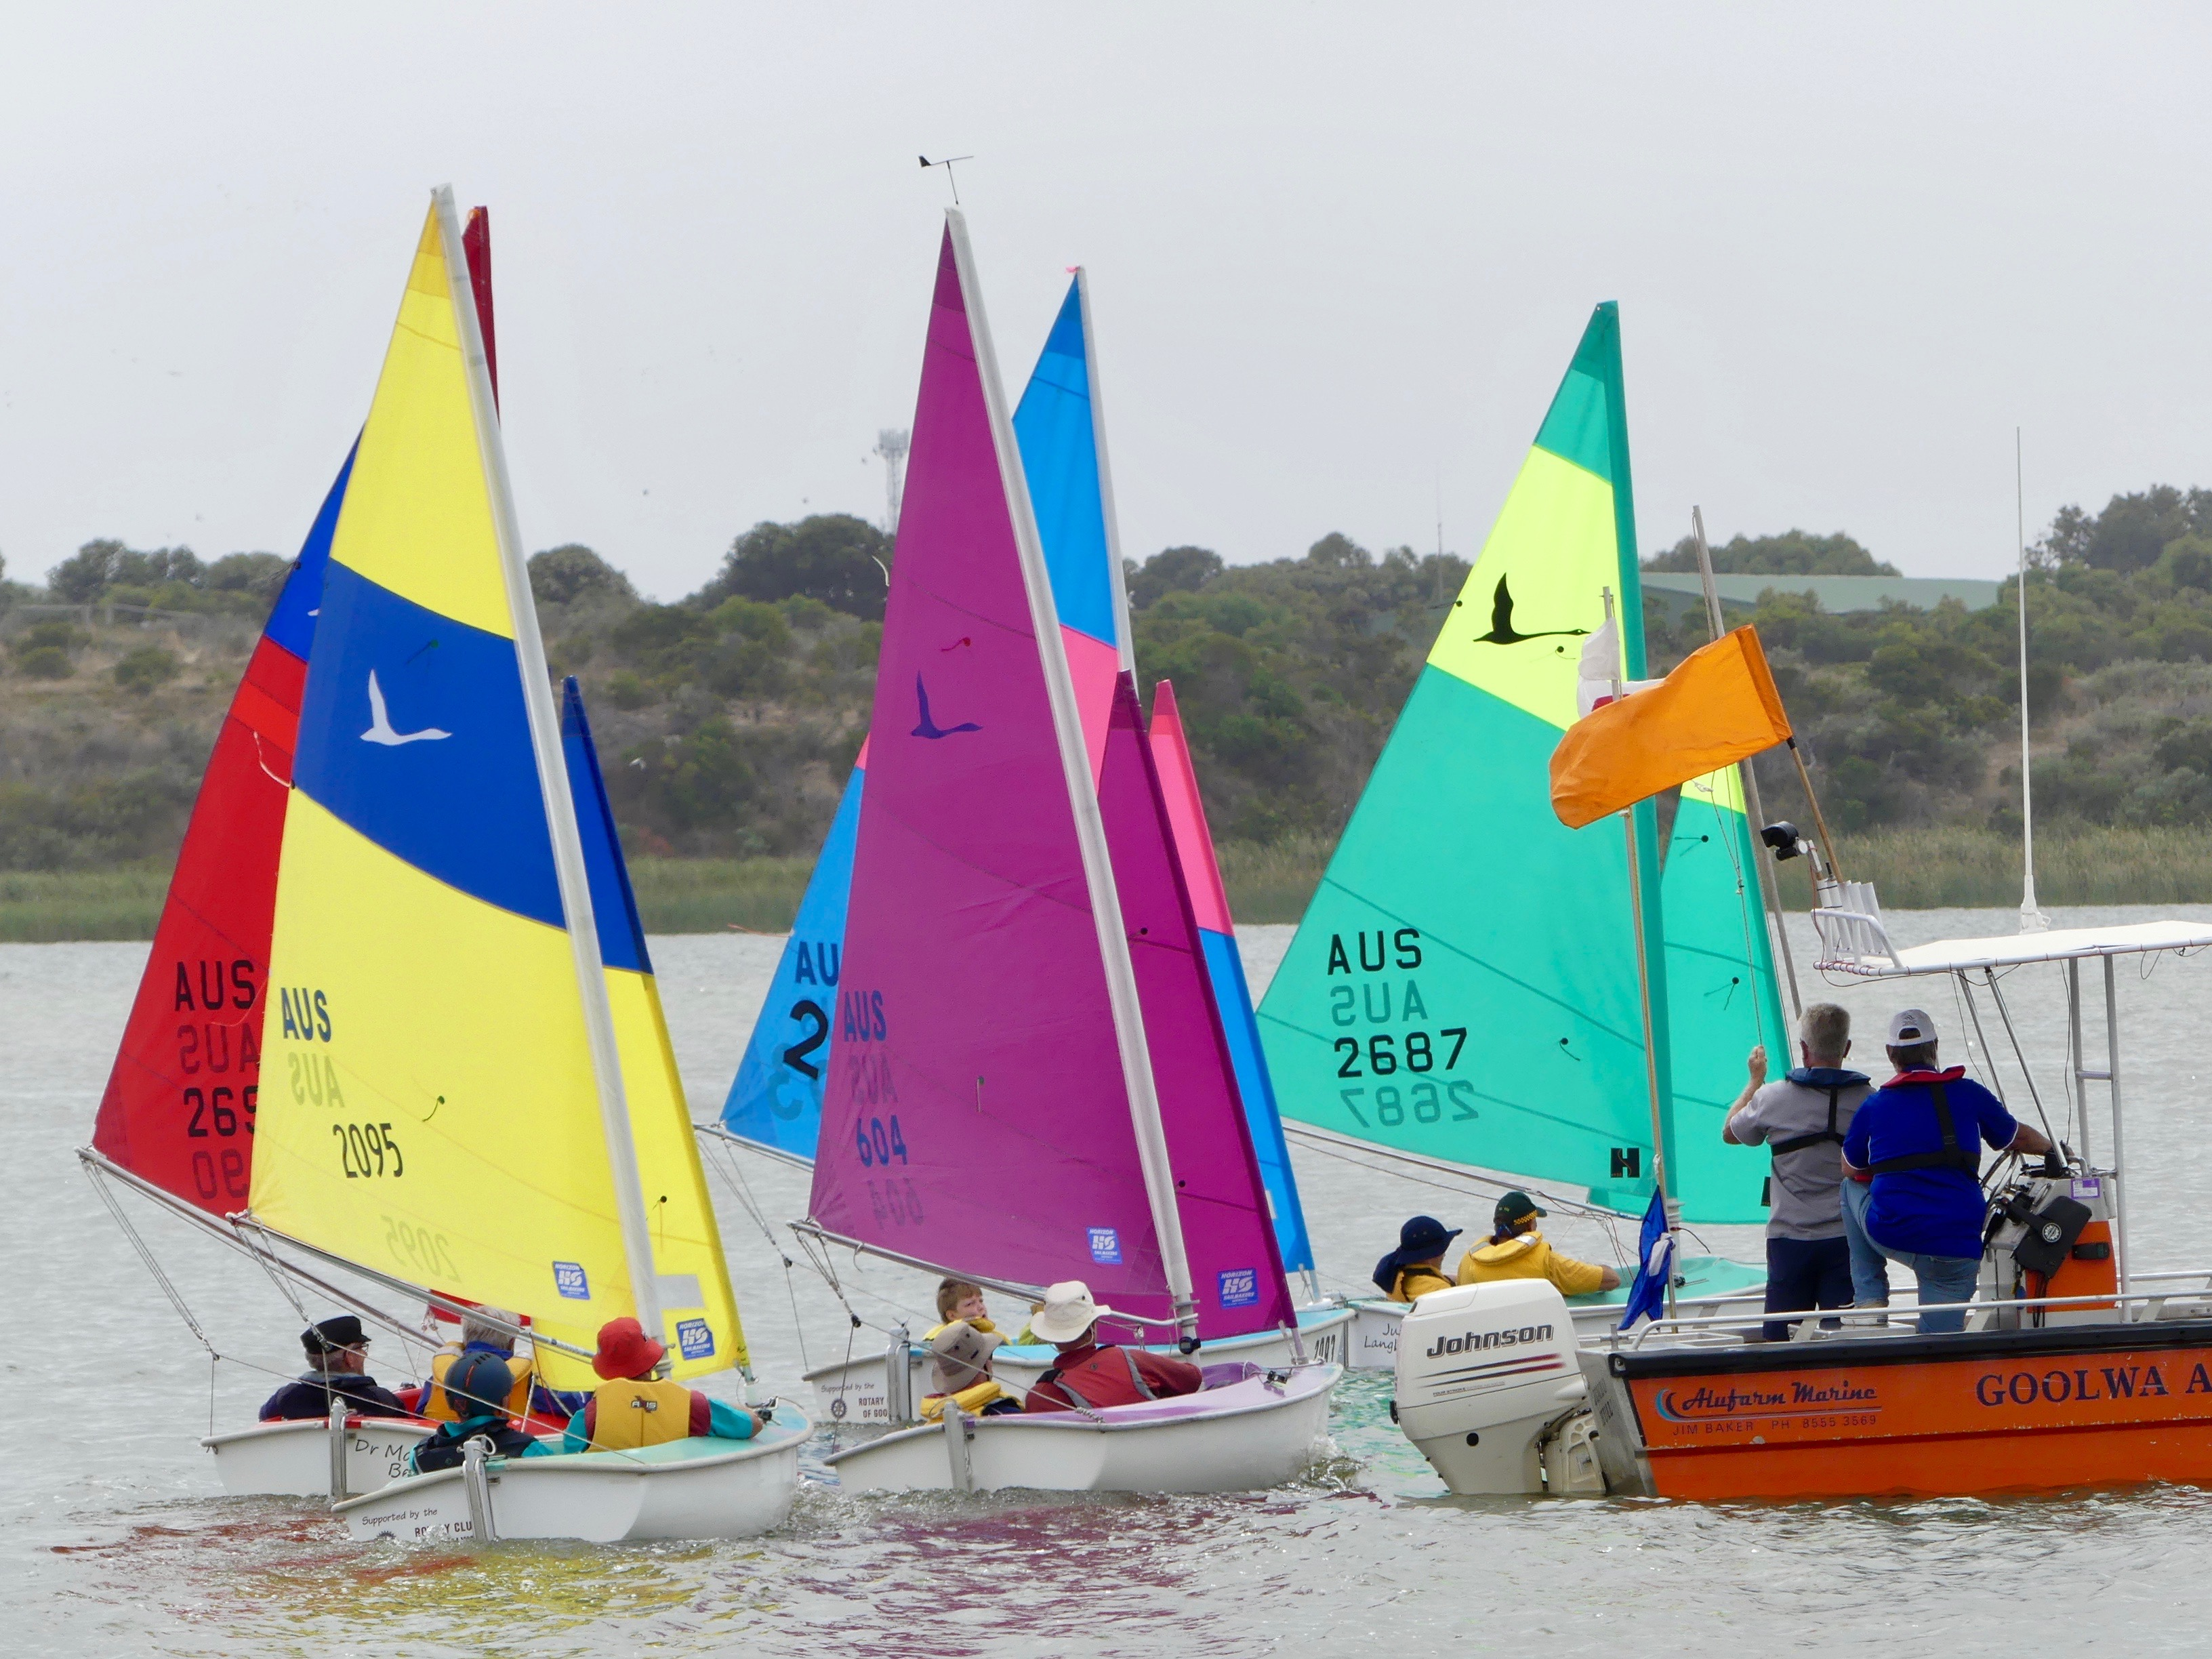 Sailors of all abilities celebrated on Gala Day | Goolwa Regatta Week